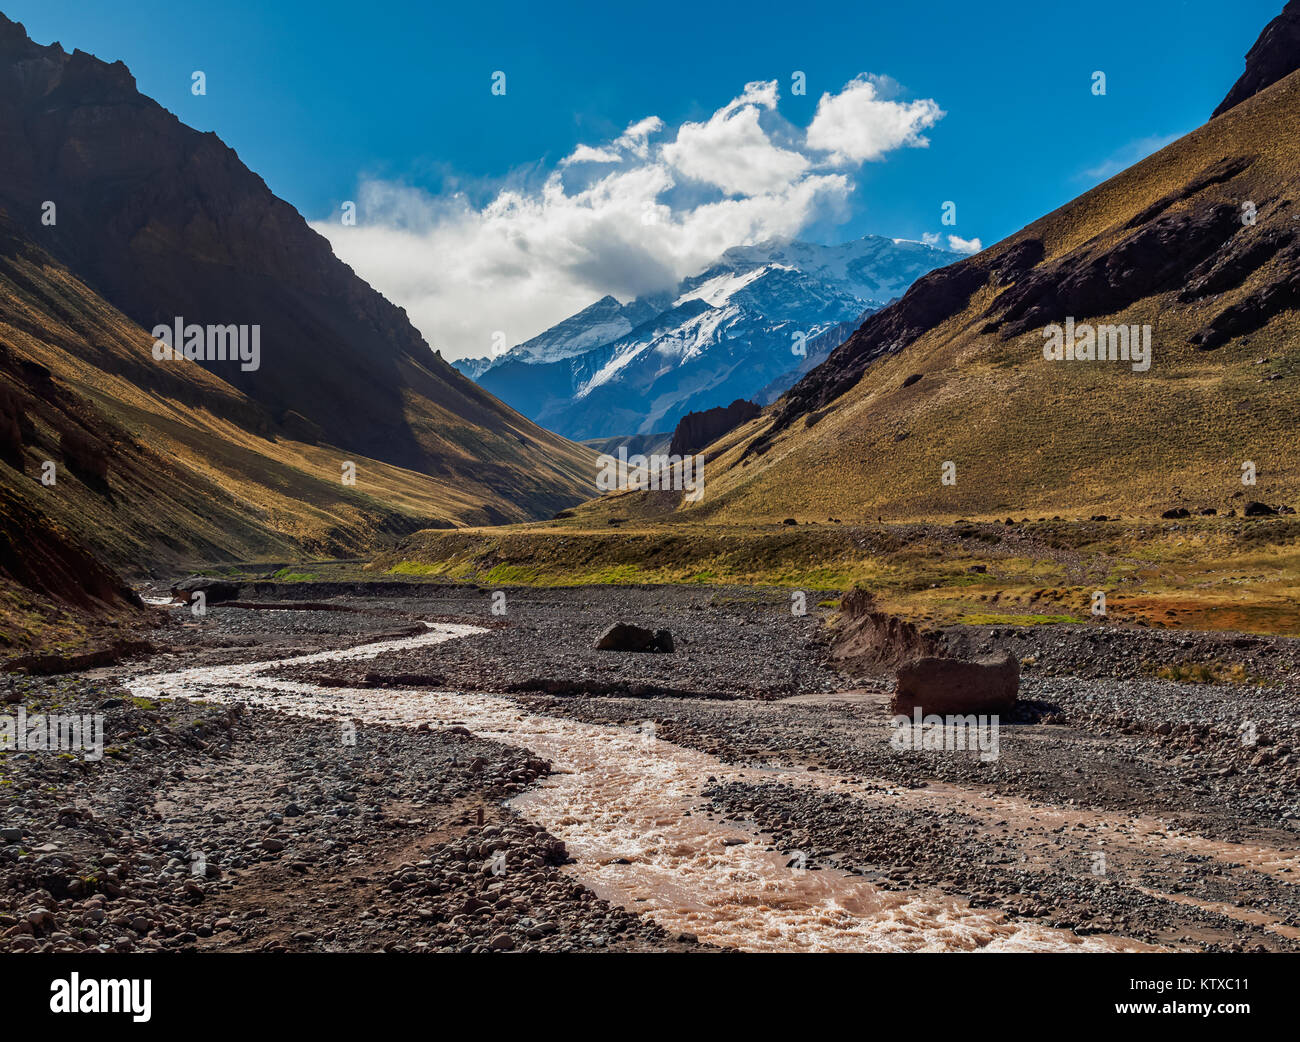 Aconcagua Mountain and Horcones River, Aconcagua Provincial Park, Central Andes, Mendoza Province, Argentina, South - Stock Image